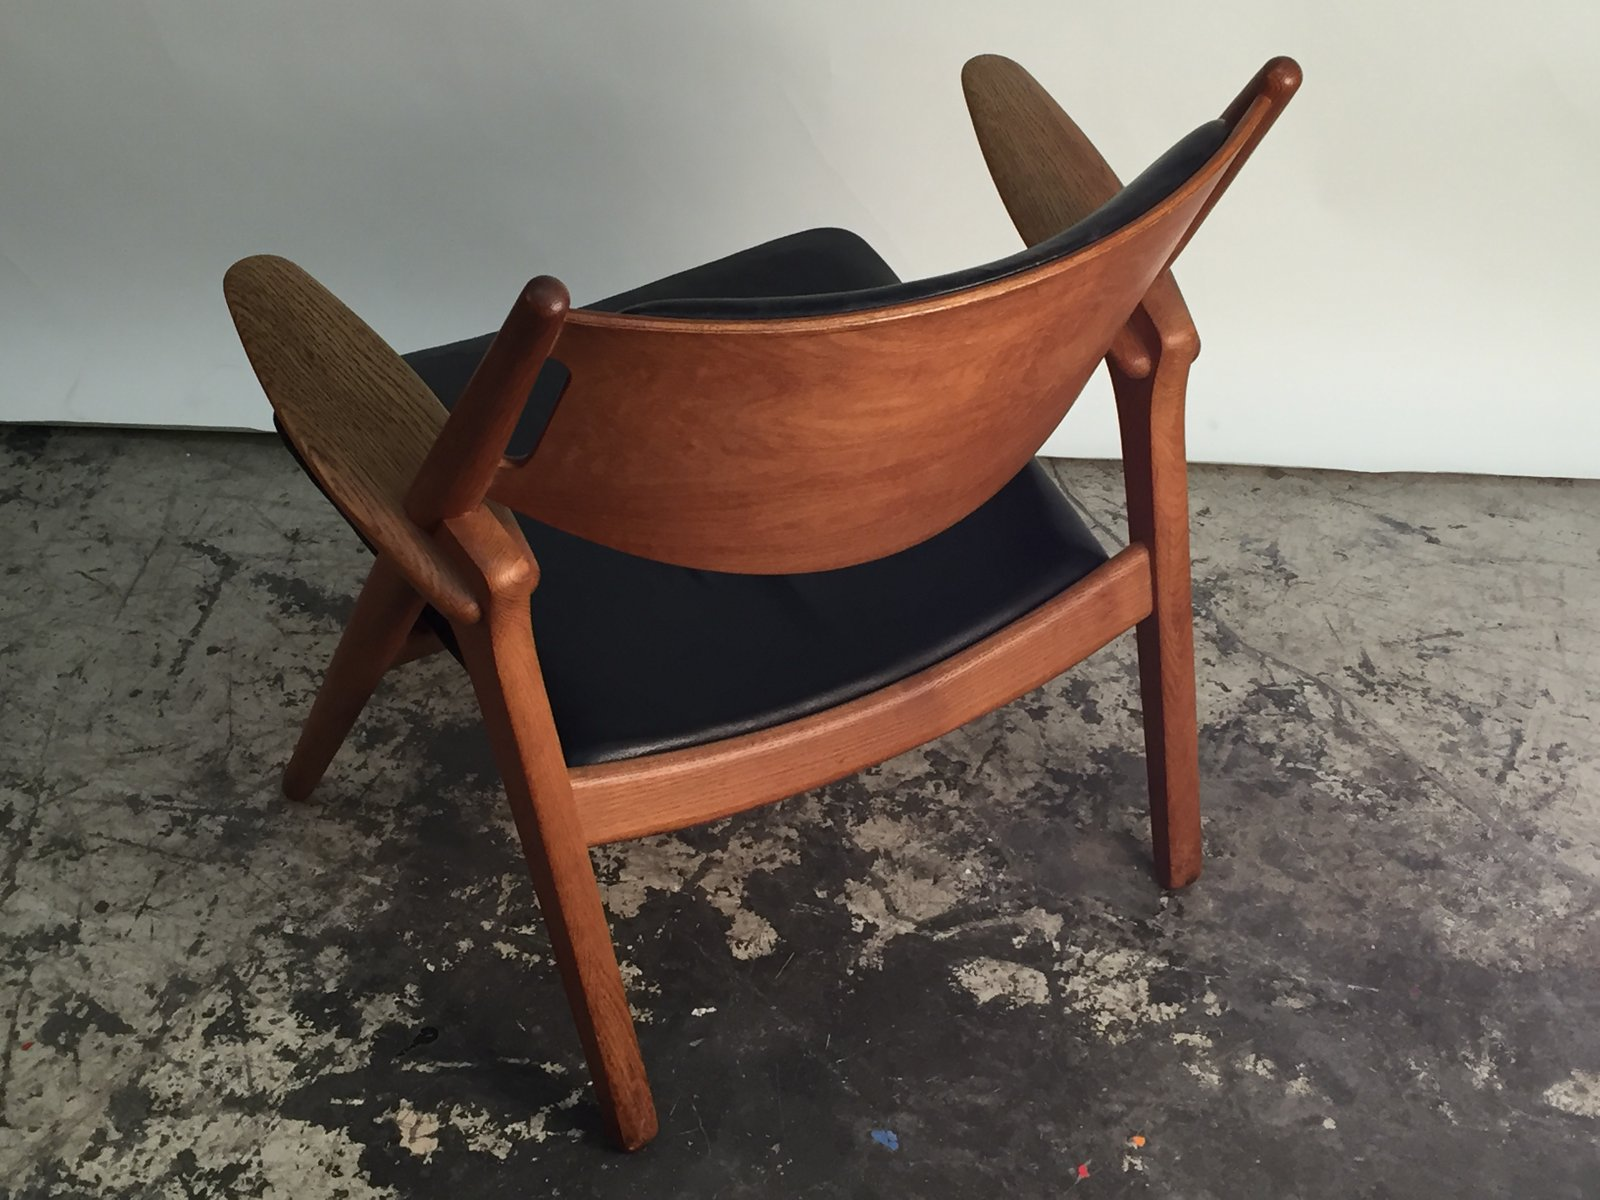 danish ch28 sawhorse chair by hans j wegner for carl hansen son 1950s for sale at pamono. Black Bedroom Furniture Sets. Home Design Ideas